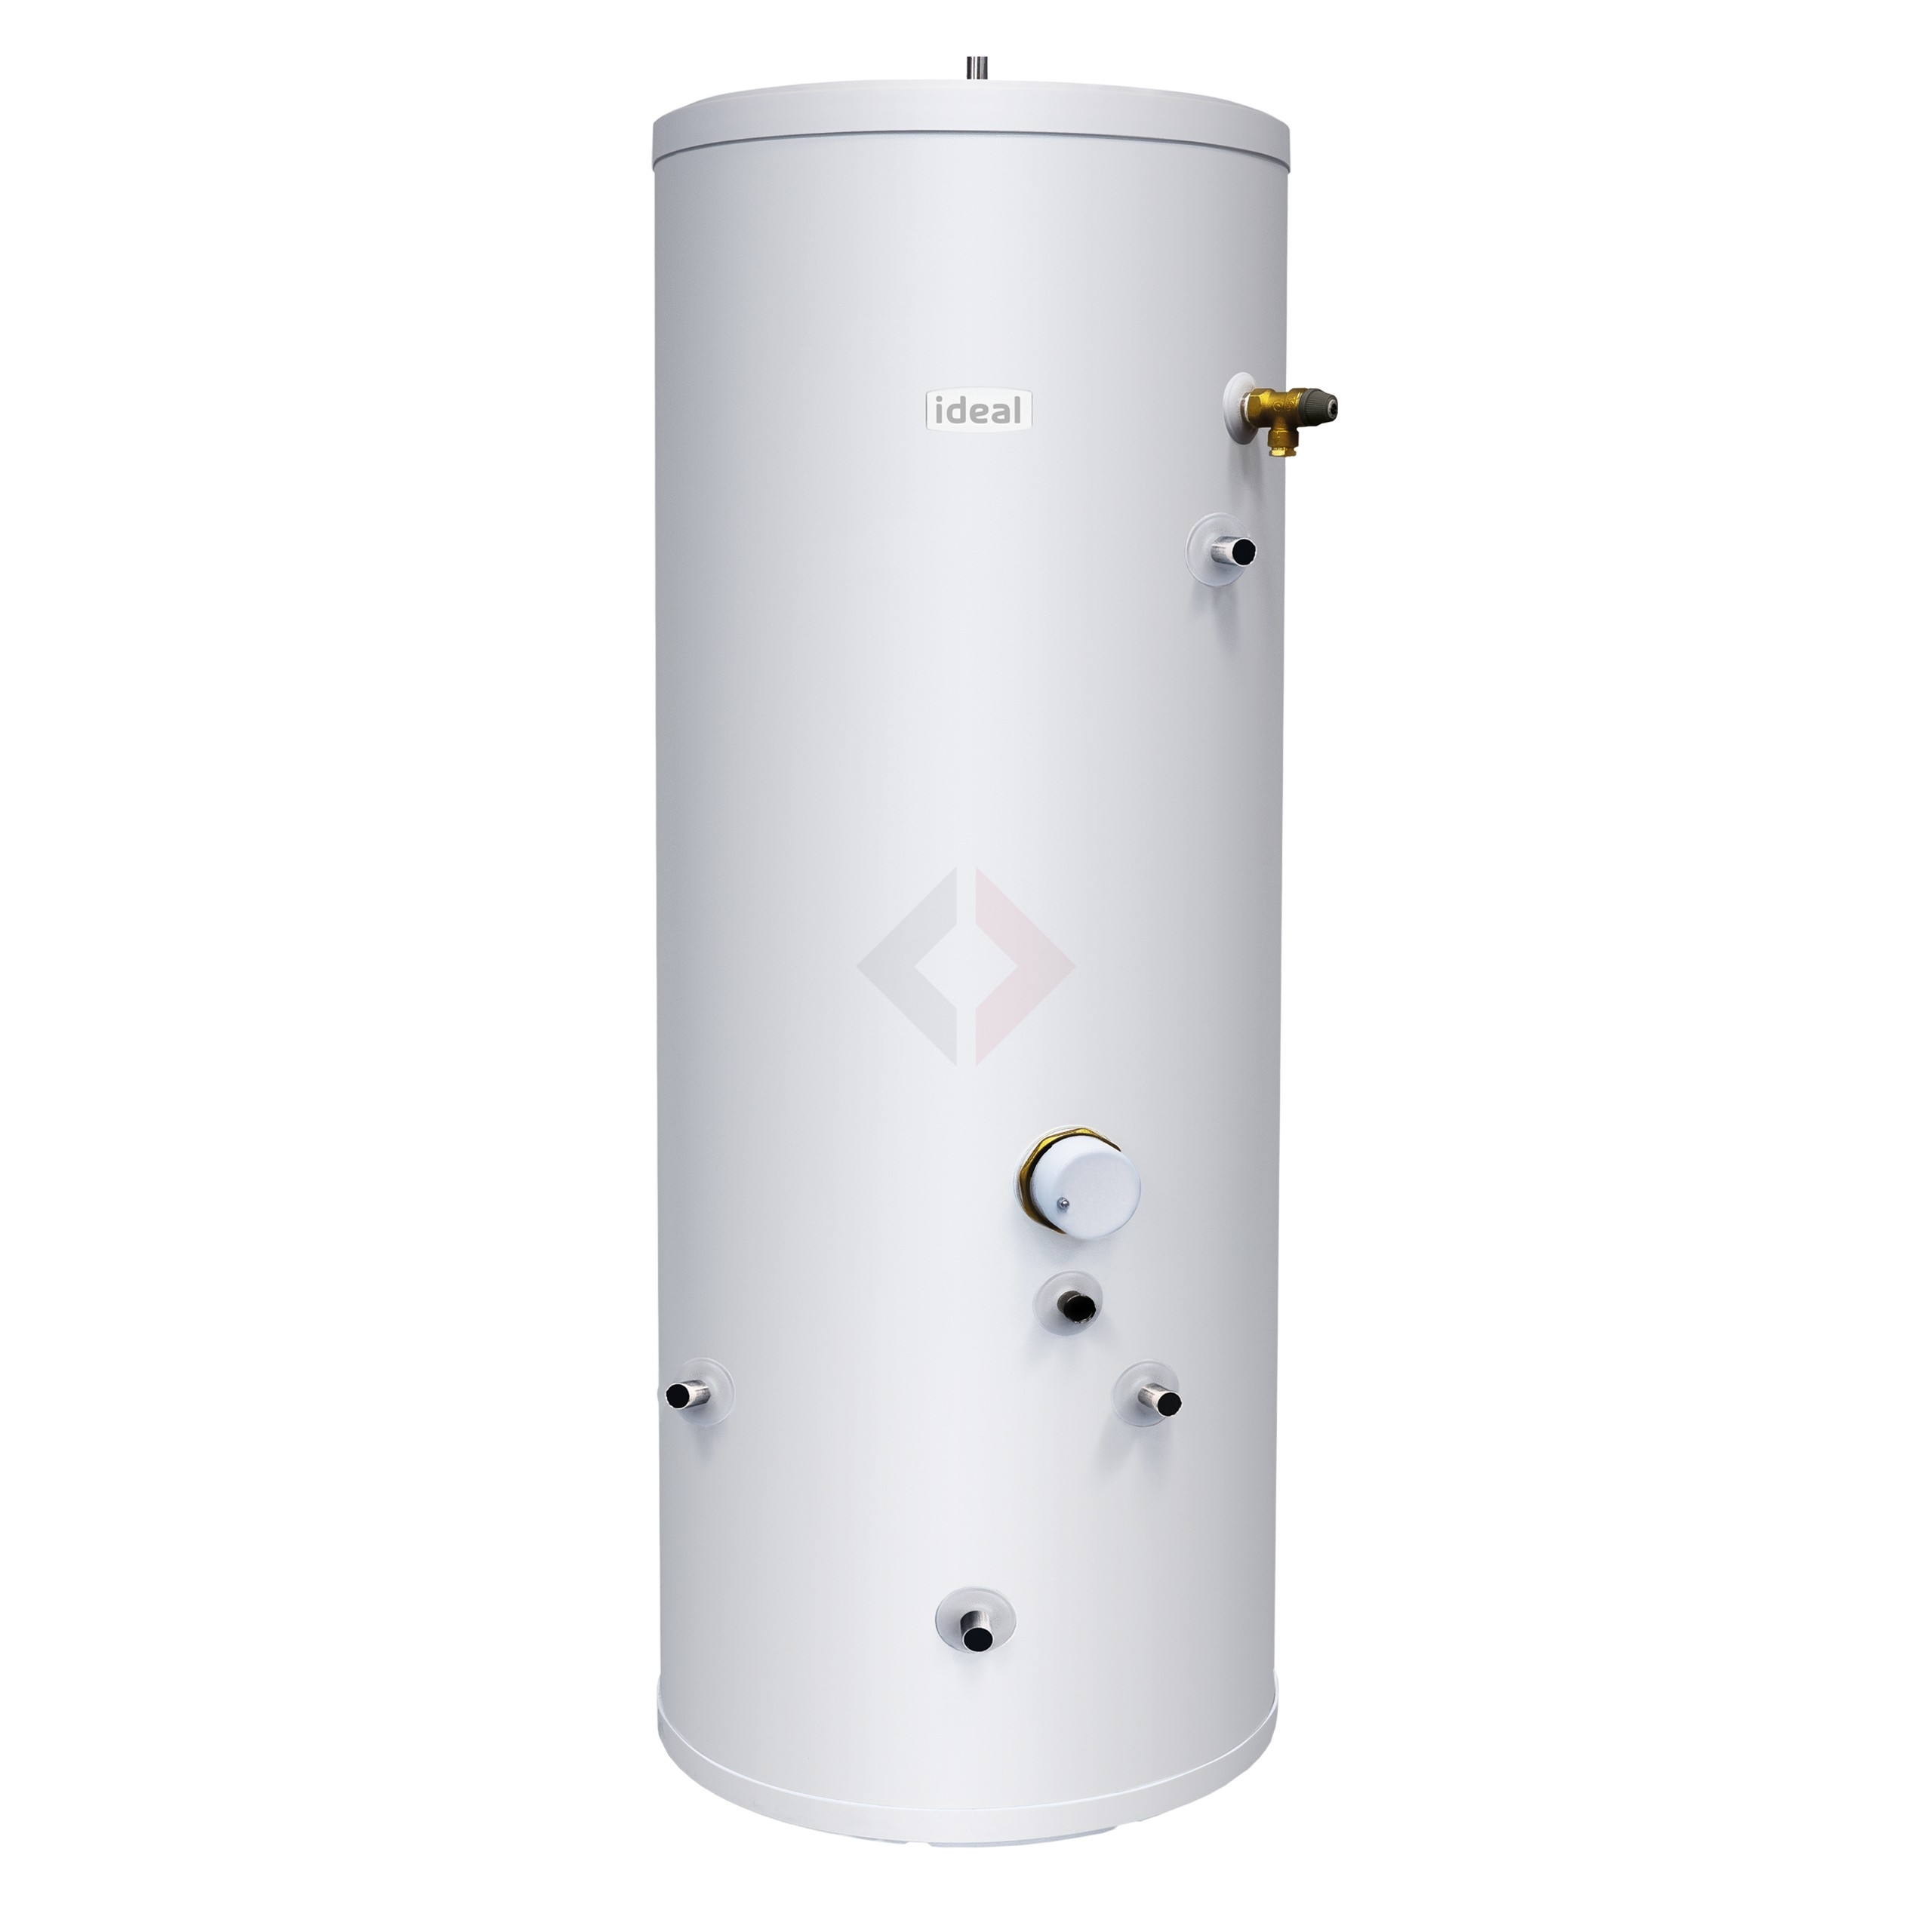 Ideal Pro 250L Indirect Unvented Cylinder, Easy Pack